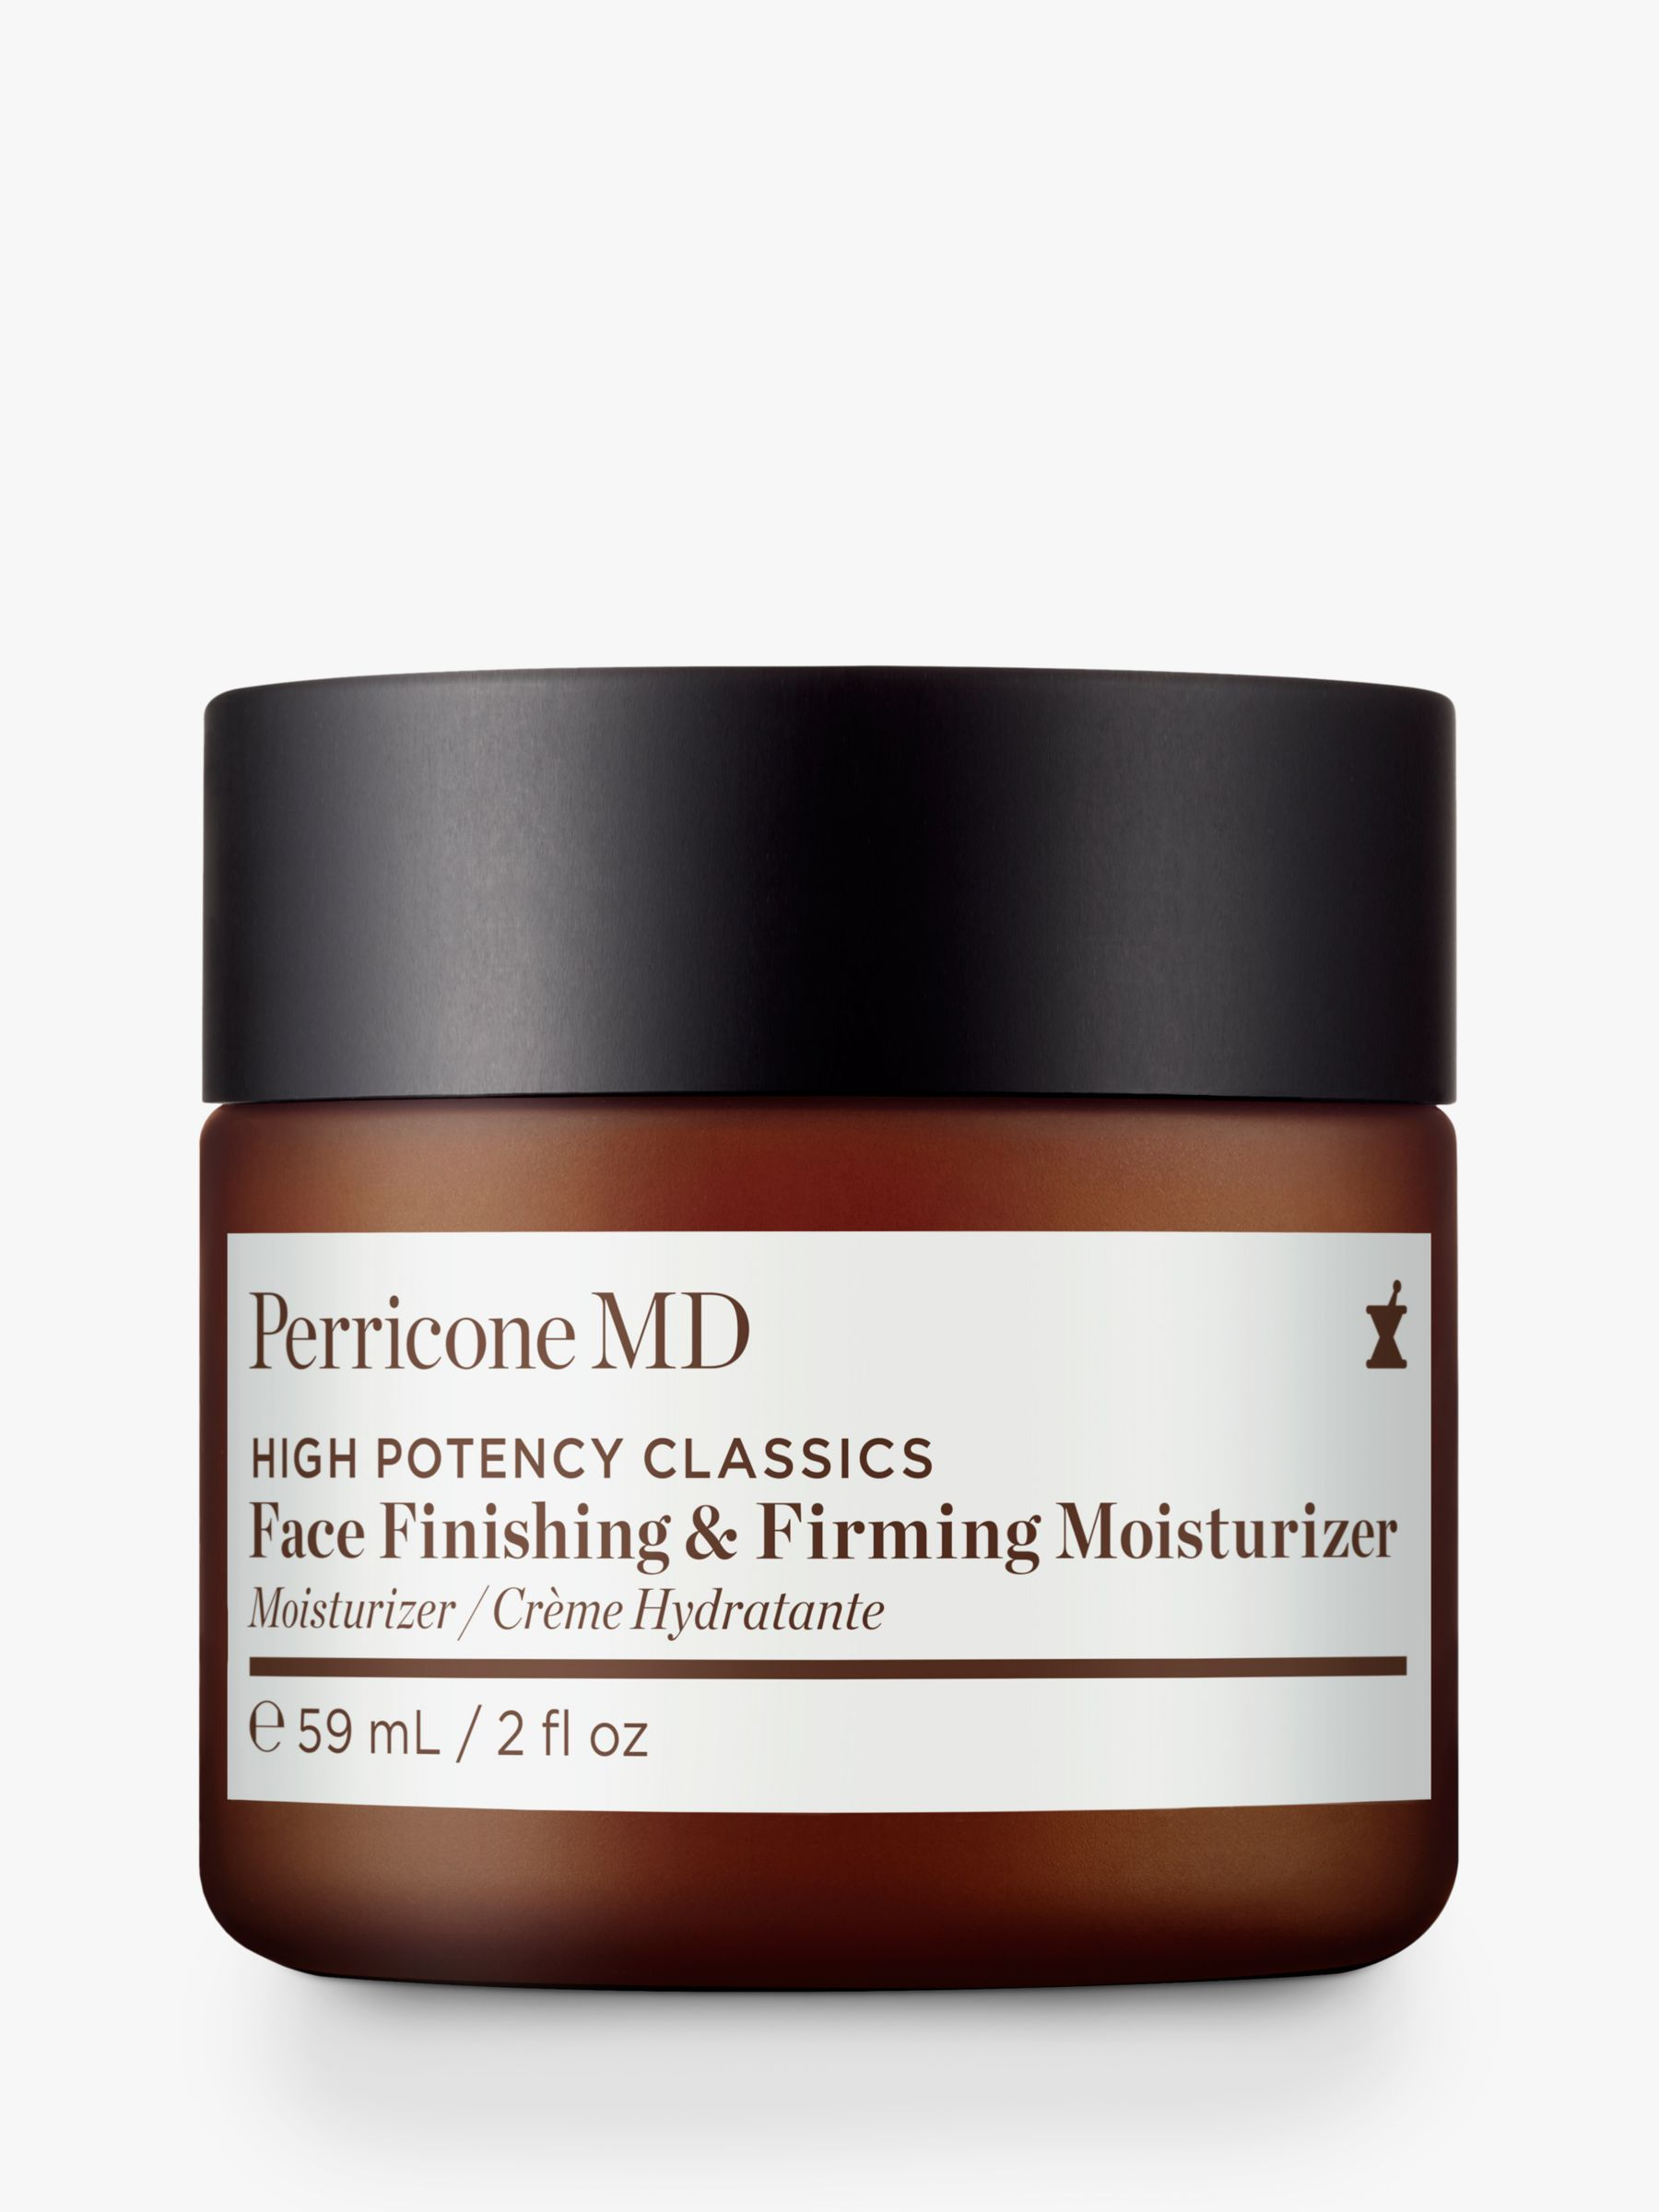 Perricone MD Perricone MD High Potency Classics Face Finishing & Firming Moisturiser, 59ml